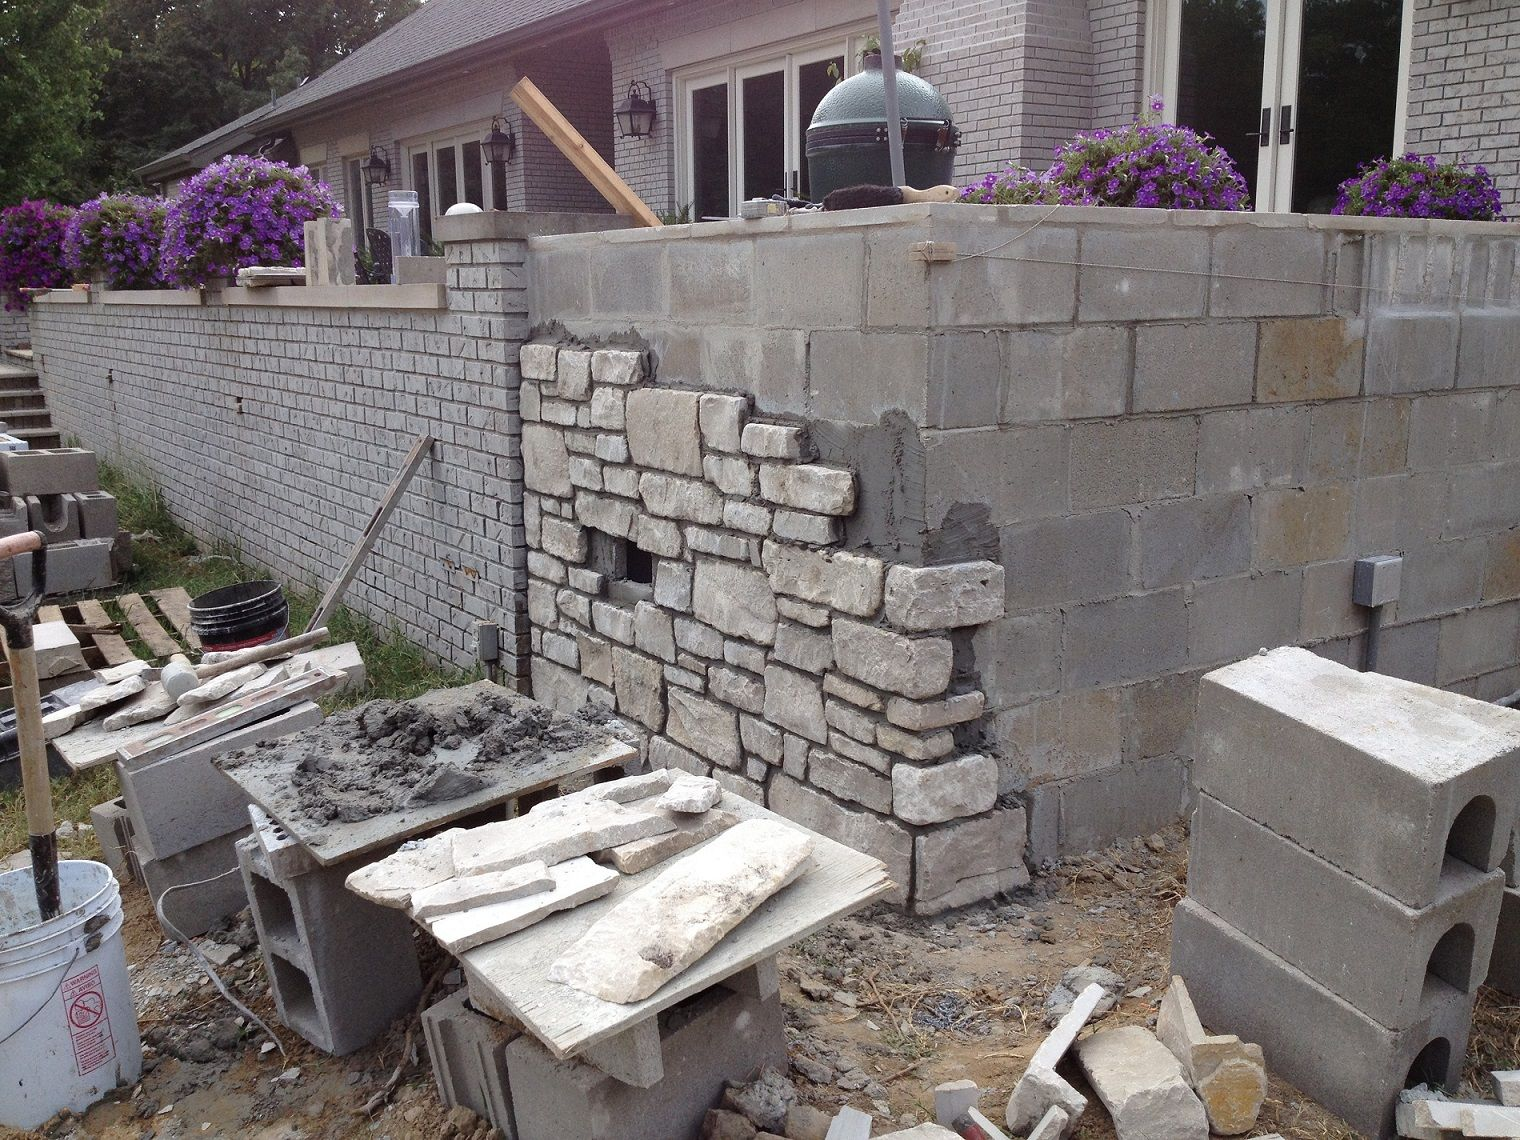 cinder block retaining wall stone facade design - Cinder Block Wall Design